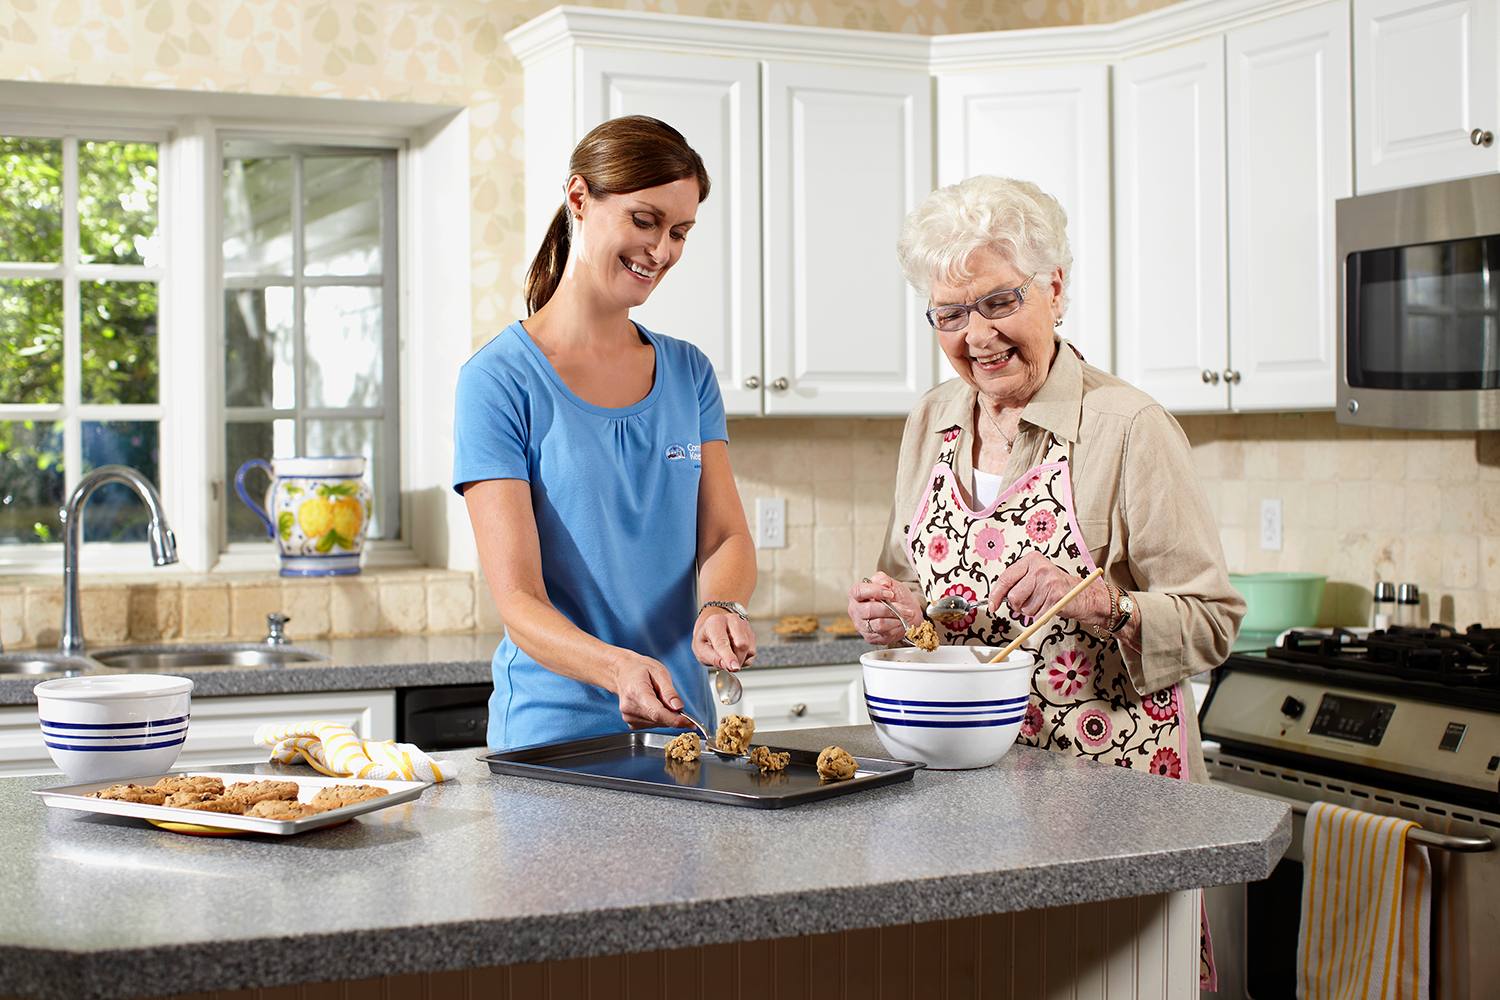 Senior woman cooking with a younger woman